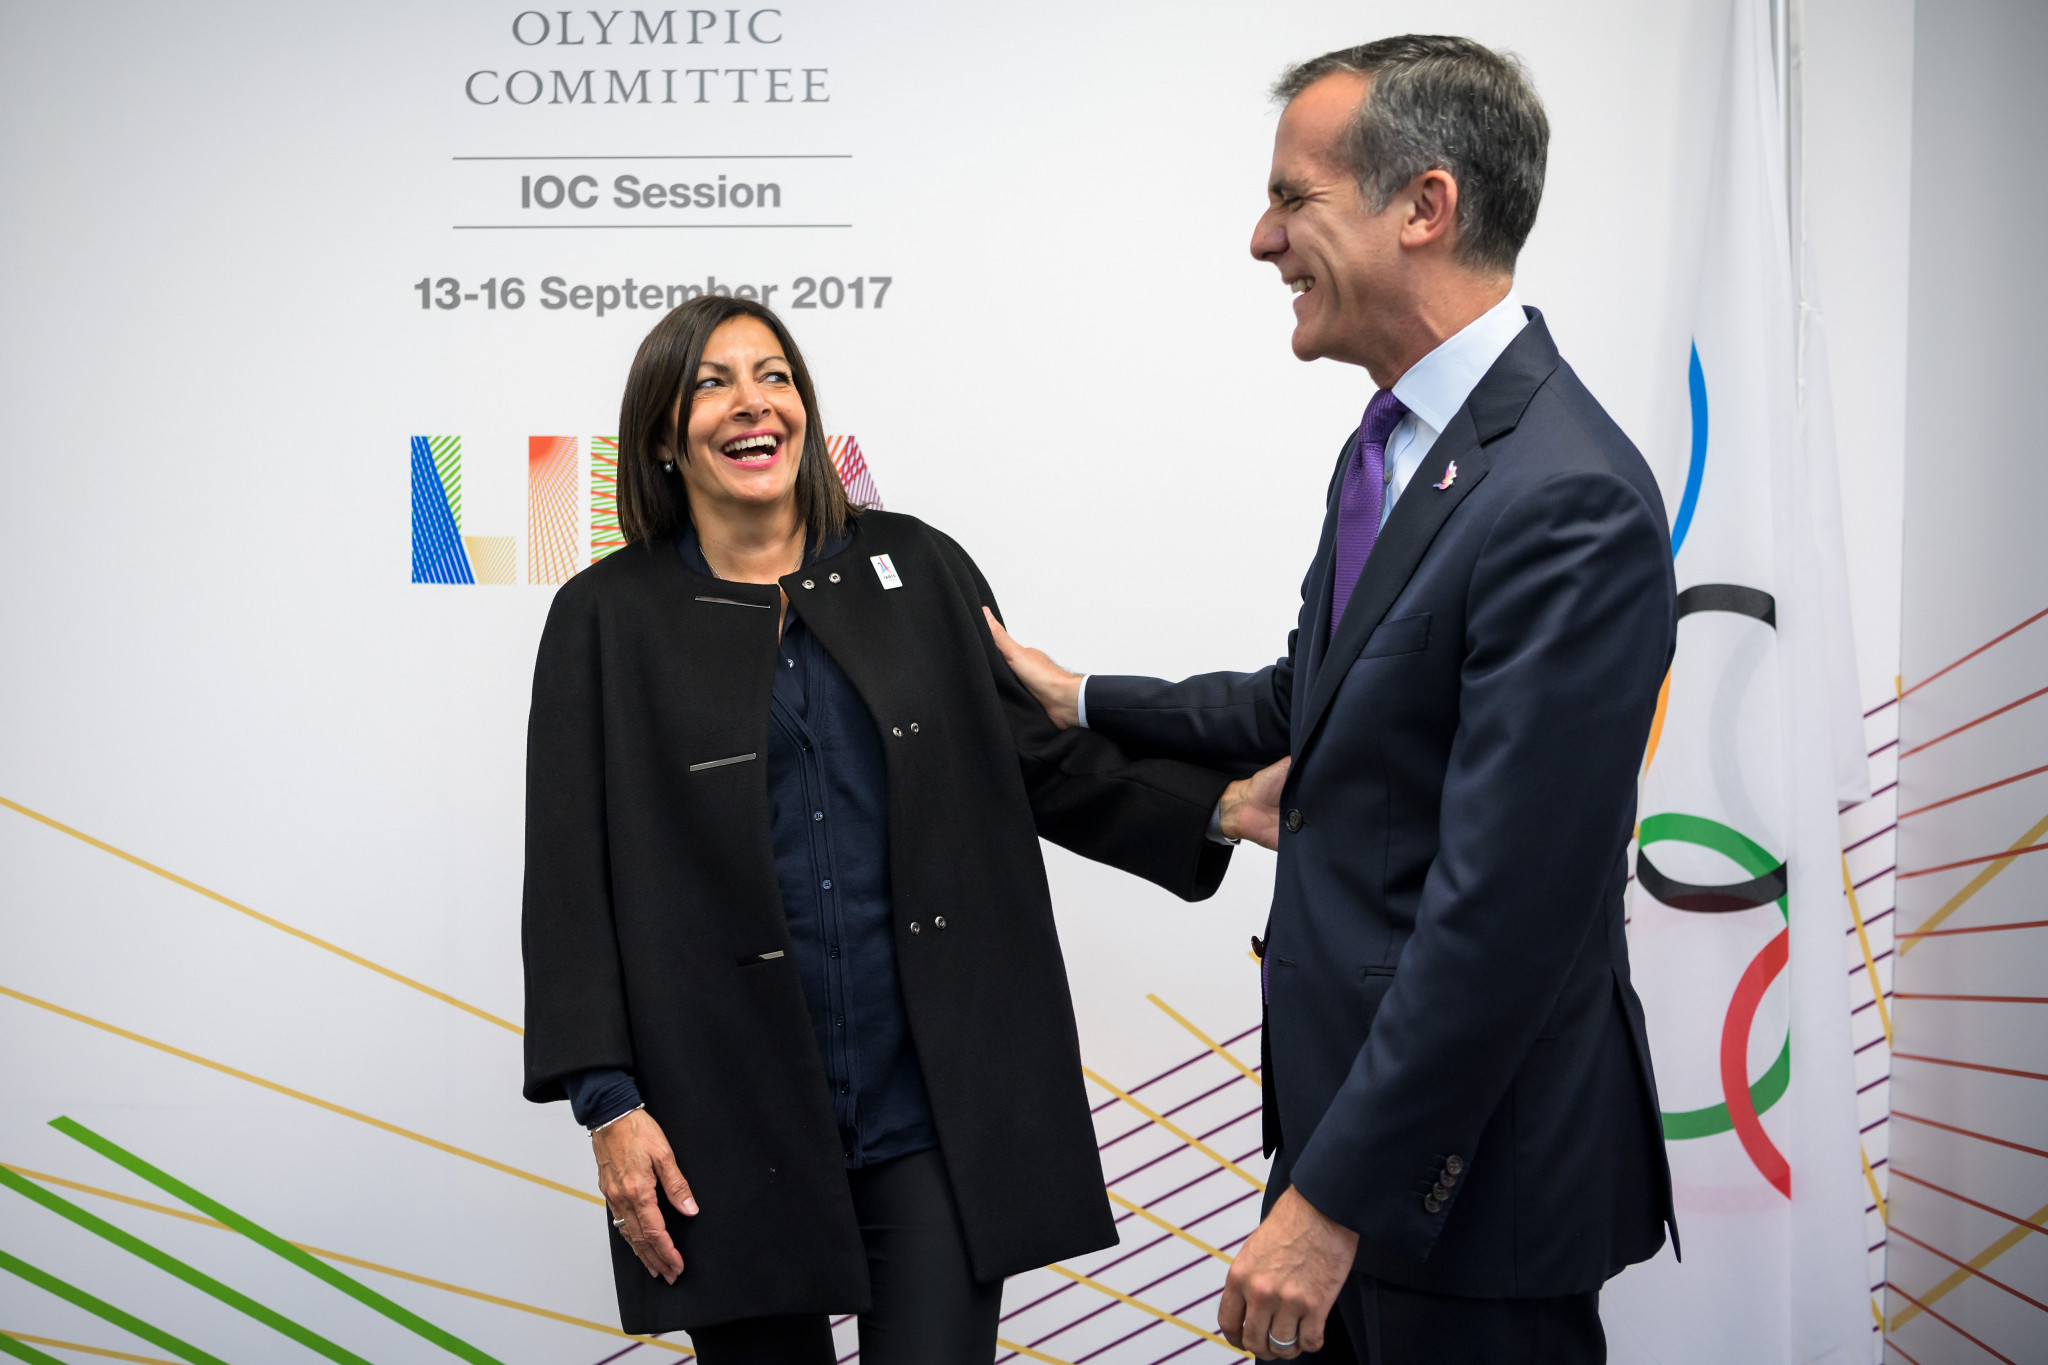 Paris 2024 and Los Angeles 2028 to sign Olympic twinning agreement at Mayors summit